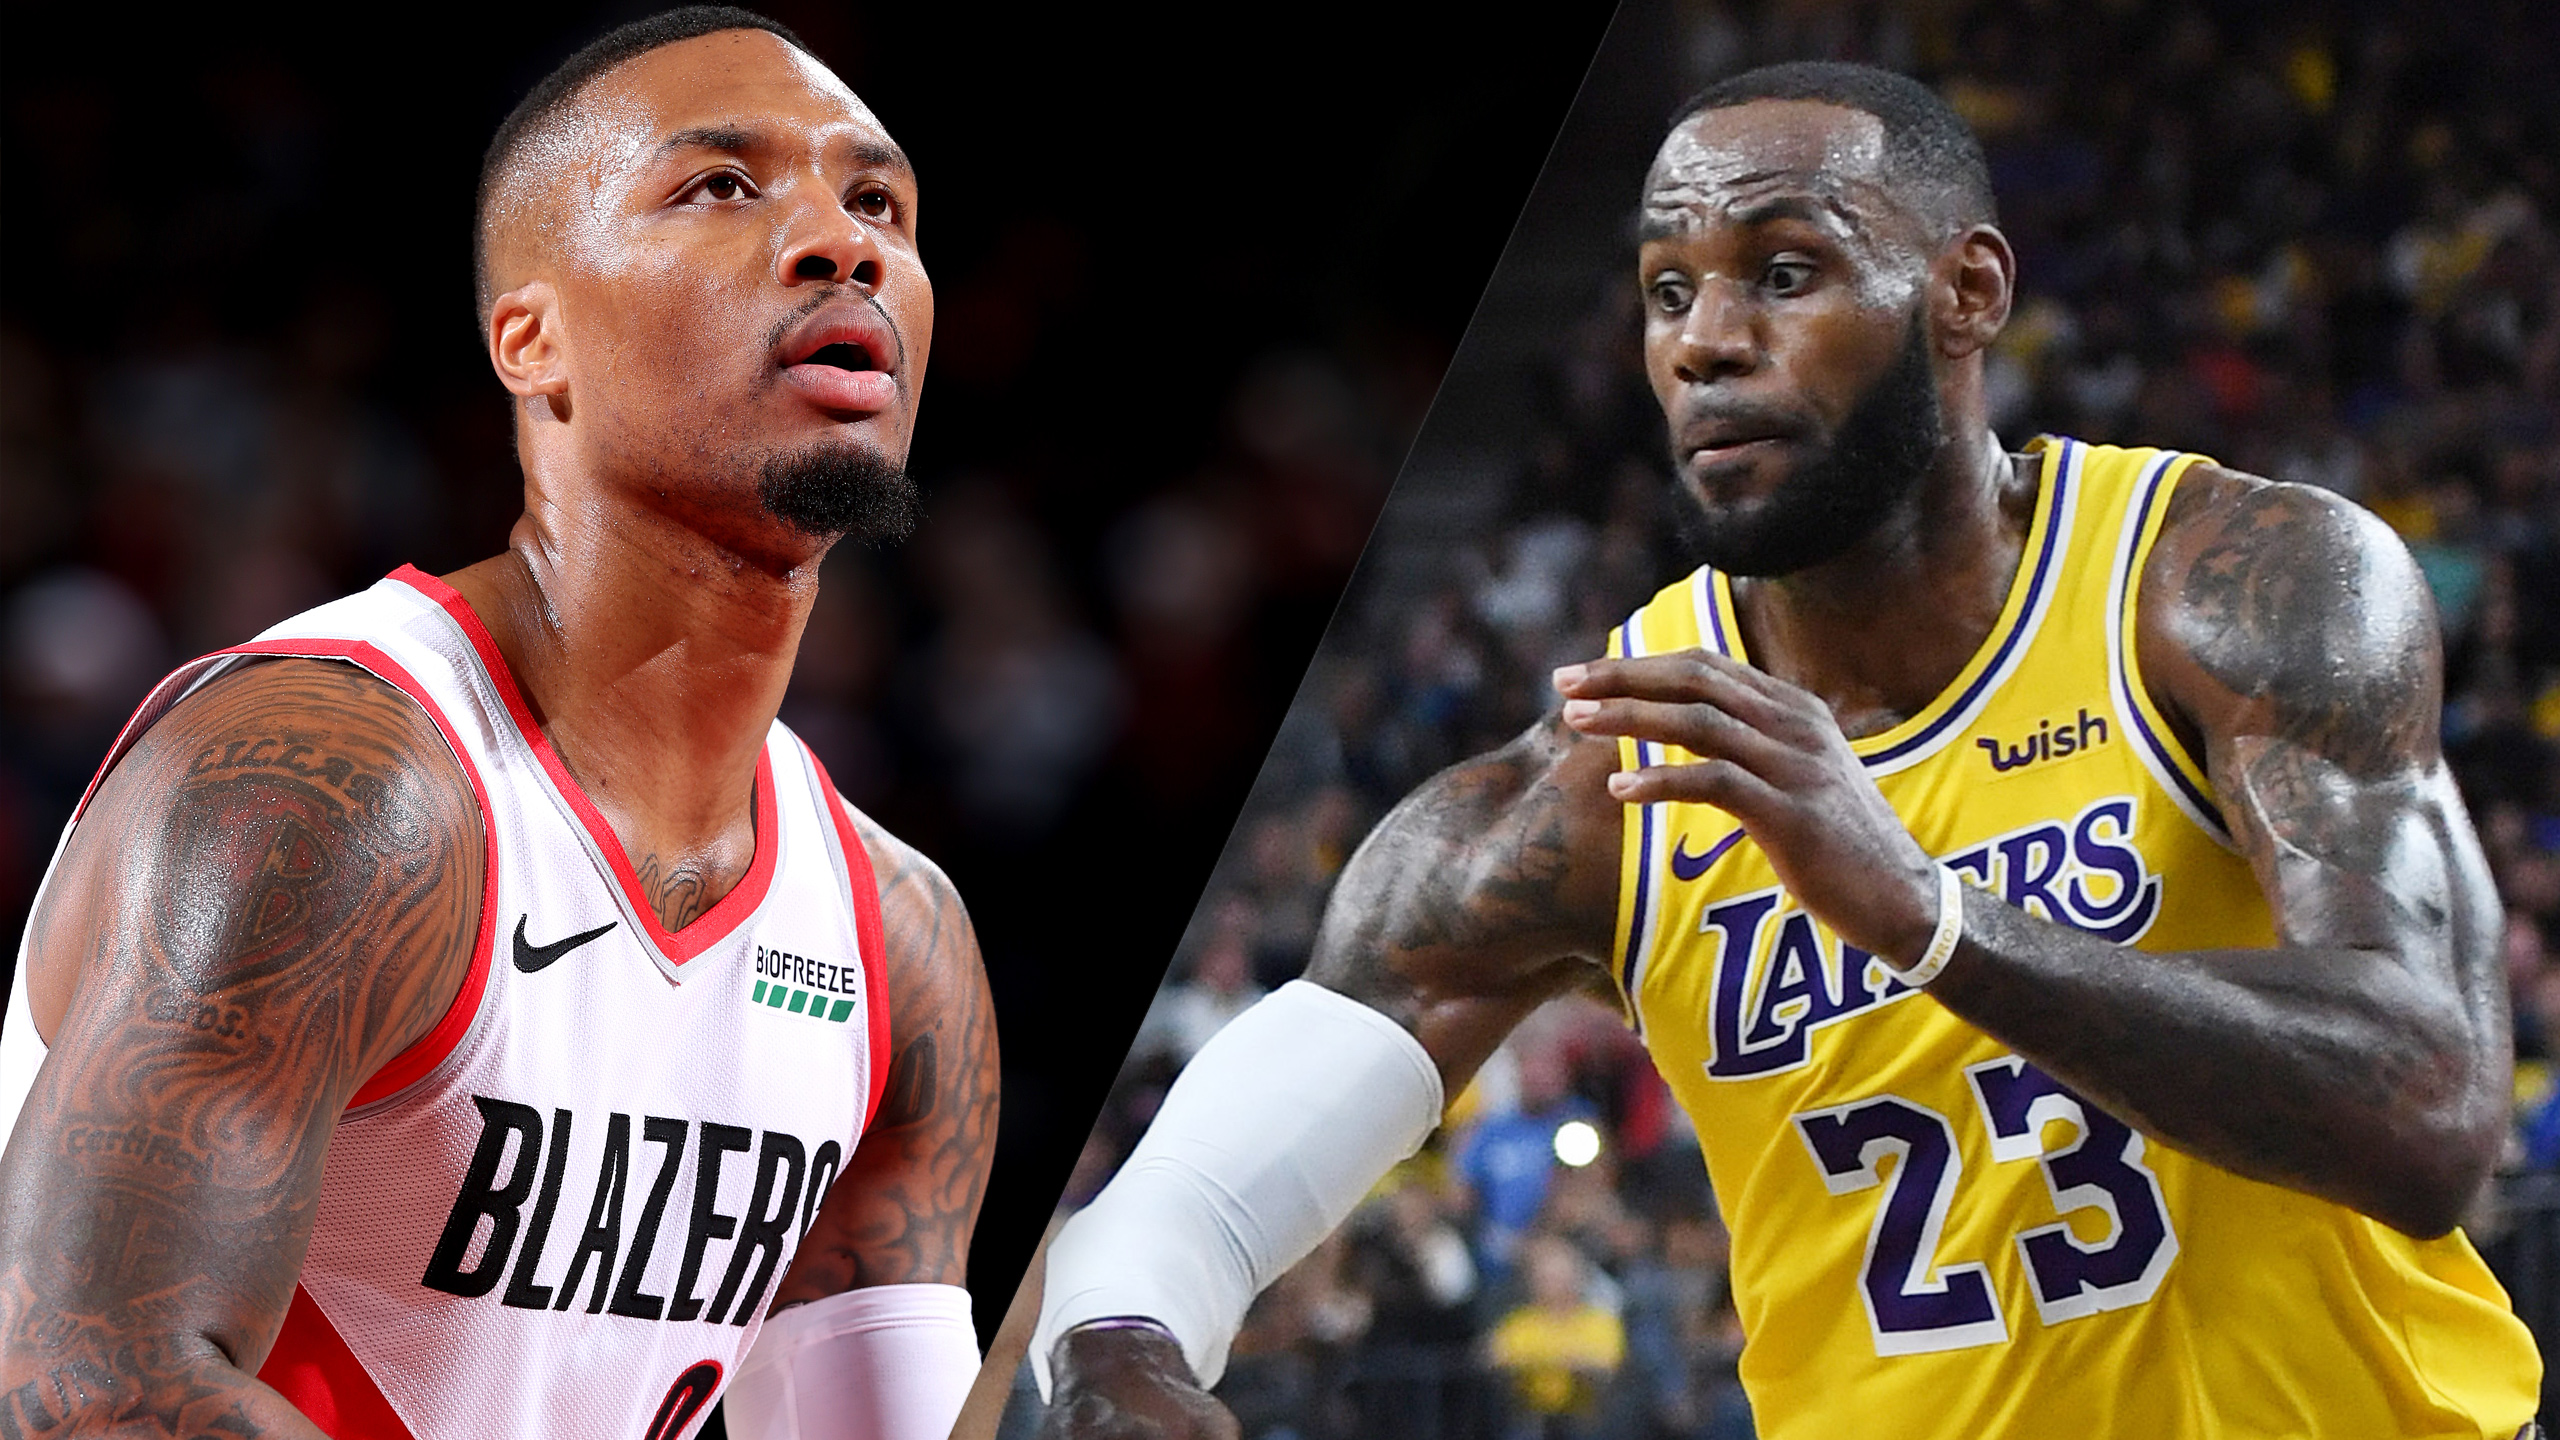 Portland Trail Blazers vs. Los Angeles Lakers (re-air)